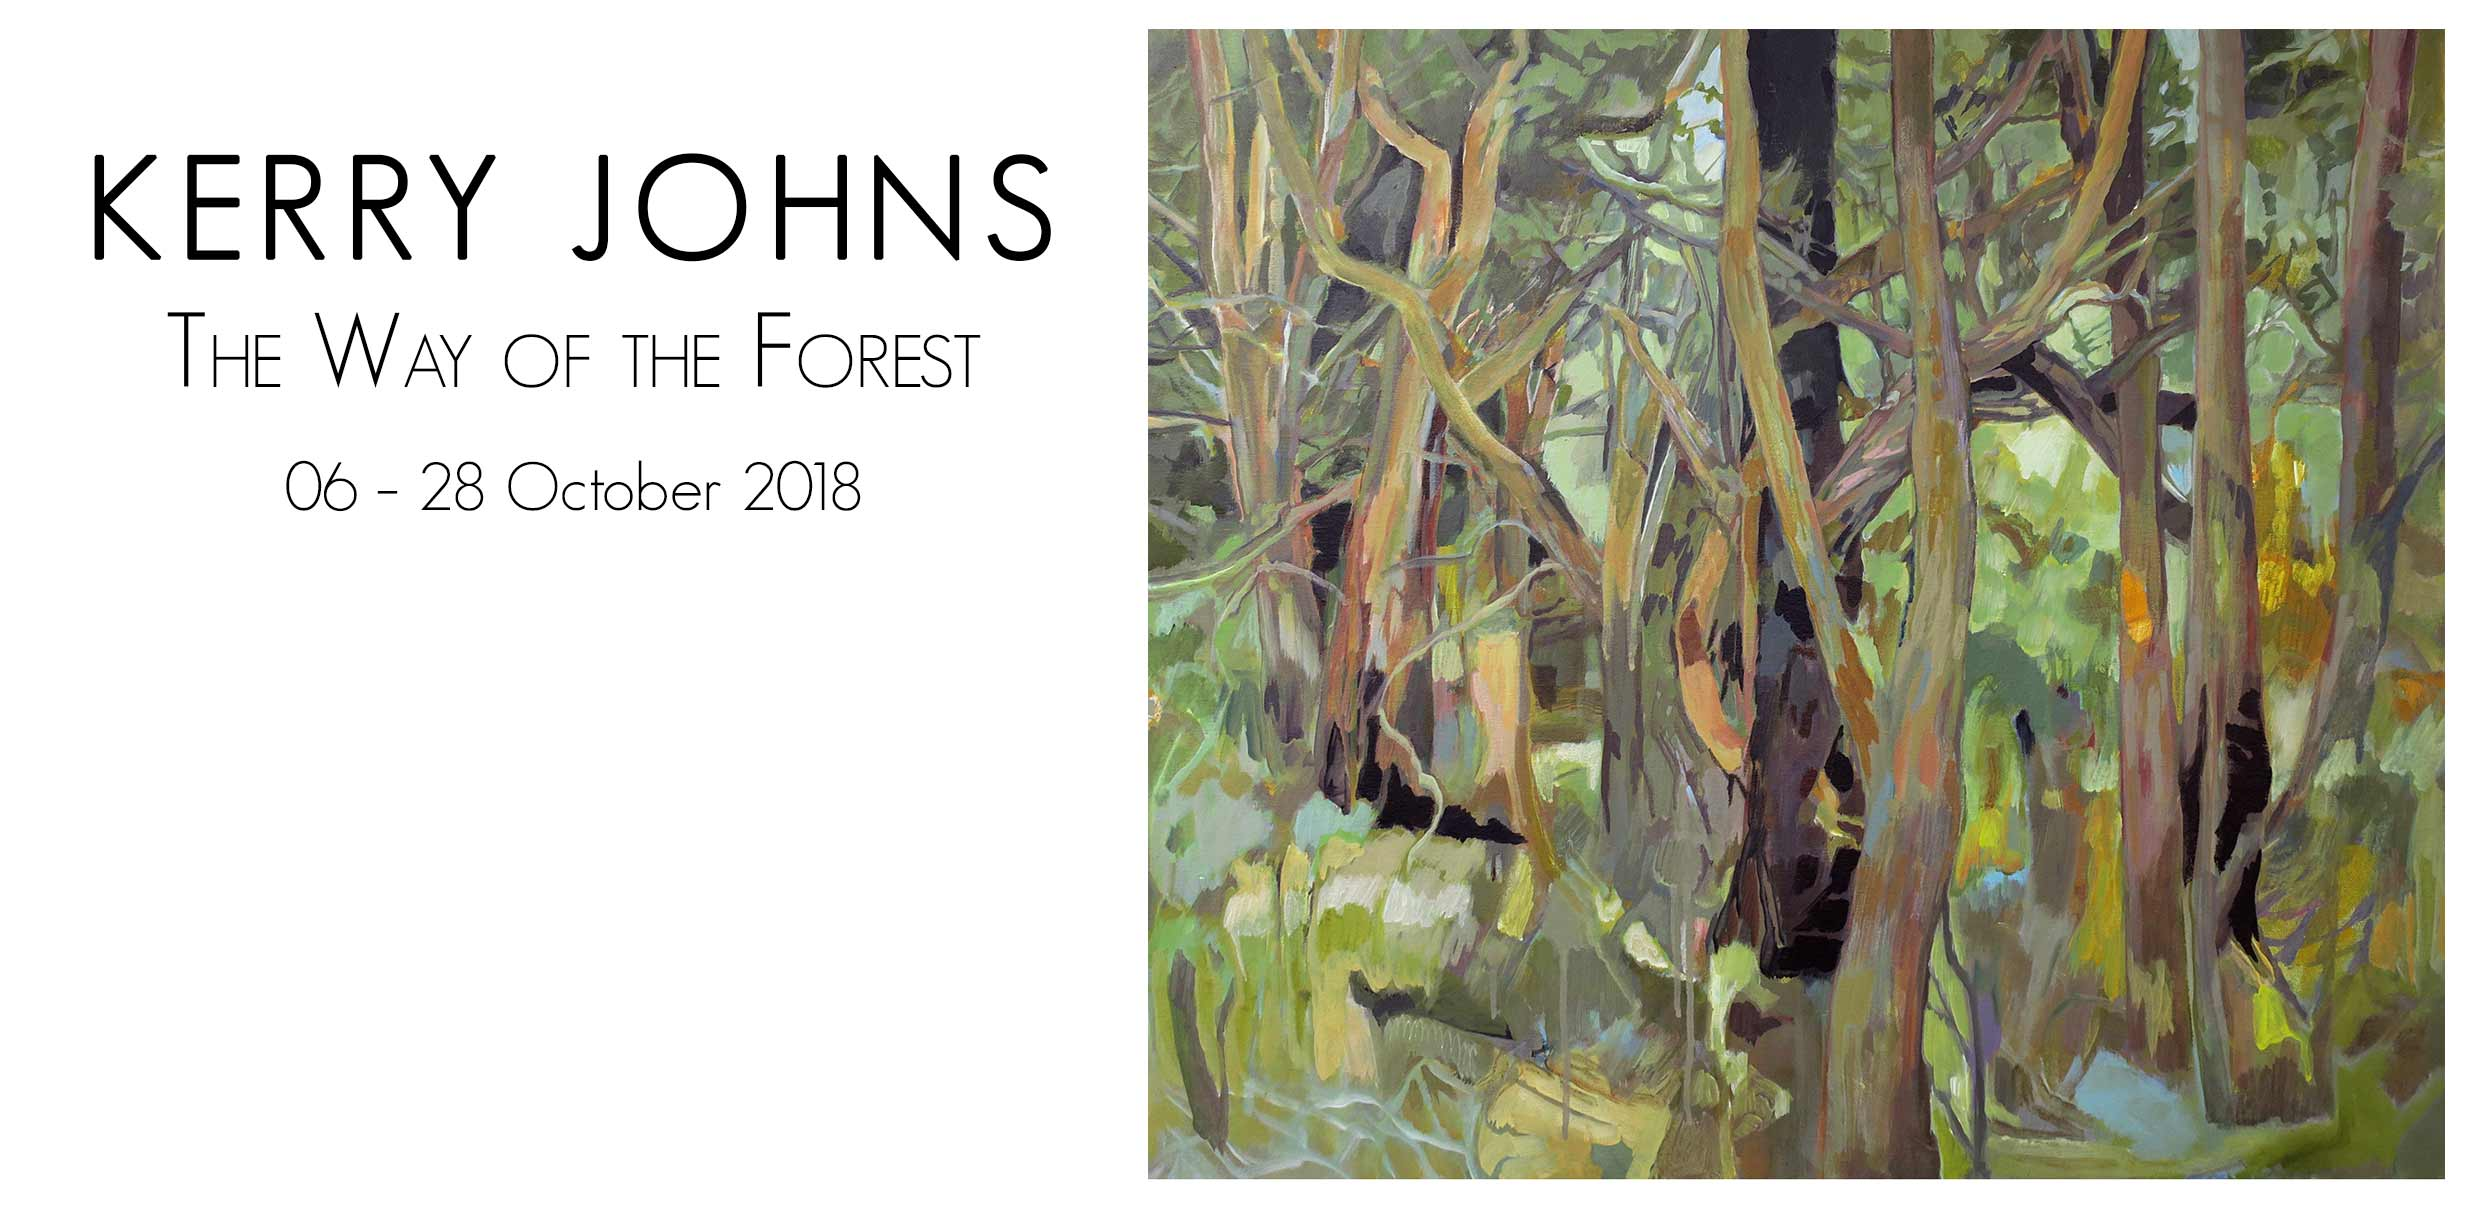 Artsite Galleries Exhibition | Kerry Johns | The Way of the Forrest | 06 - 28 October 2018